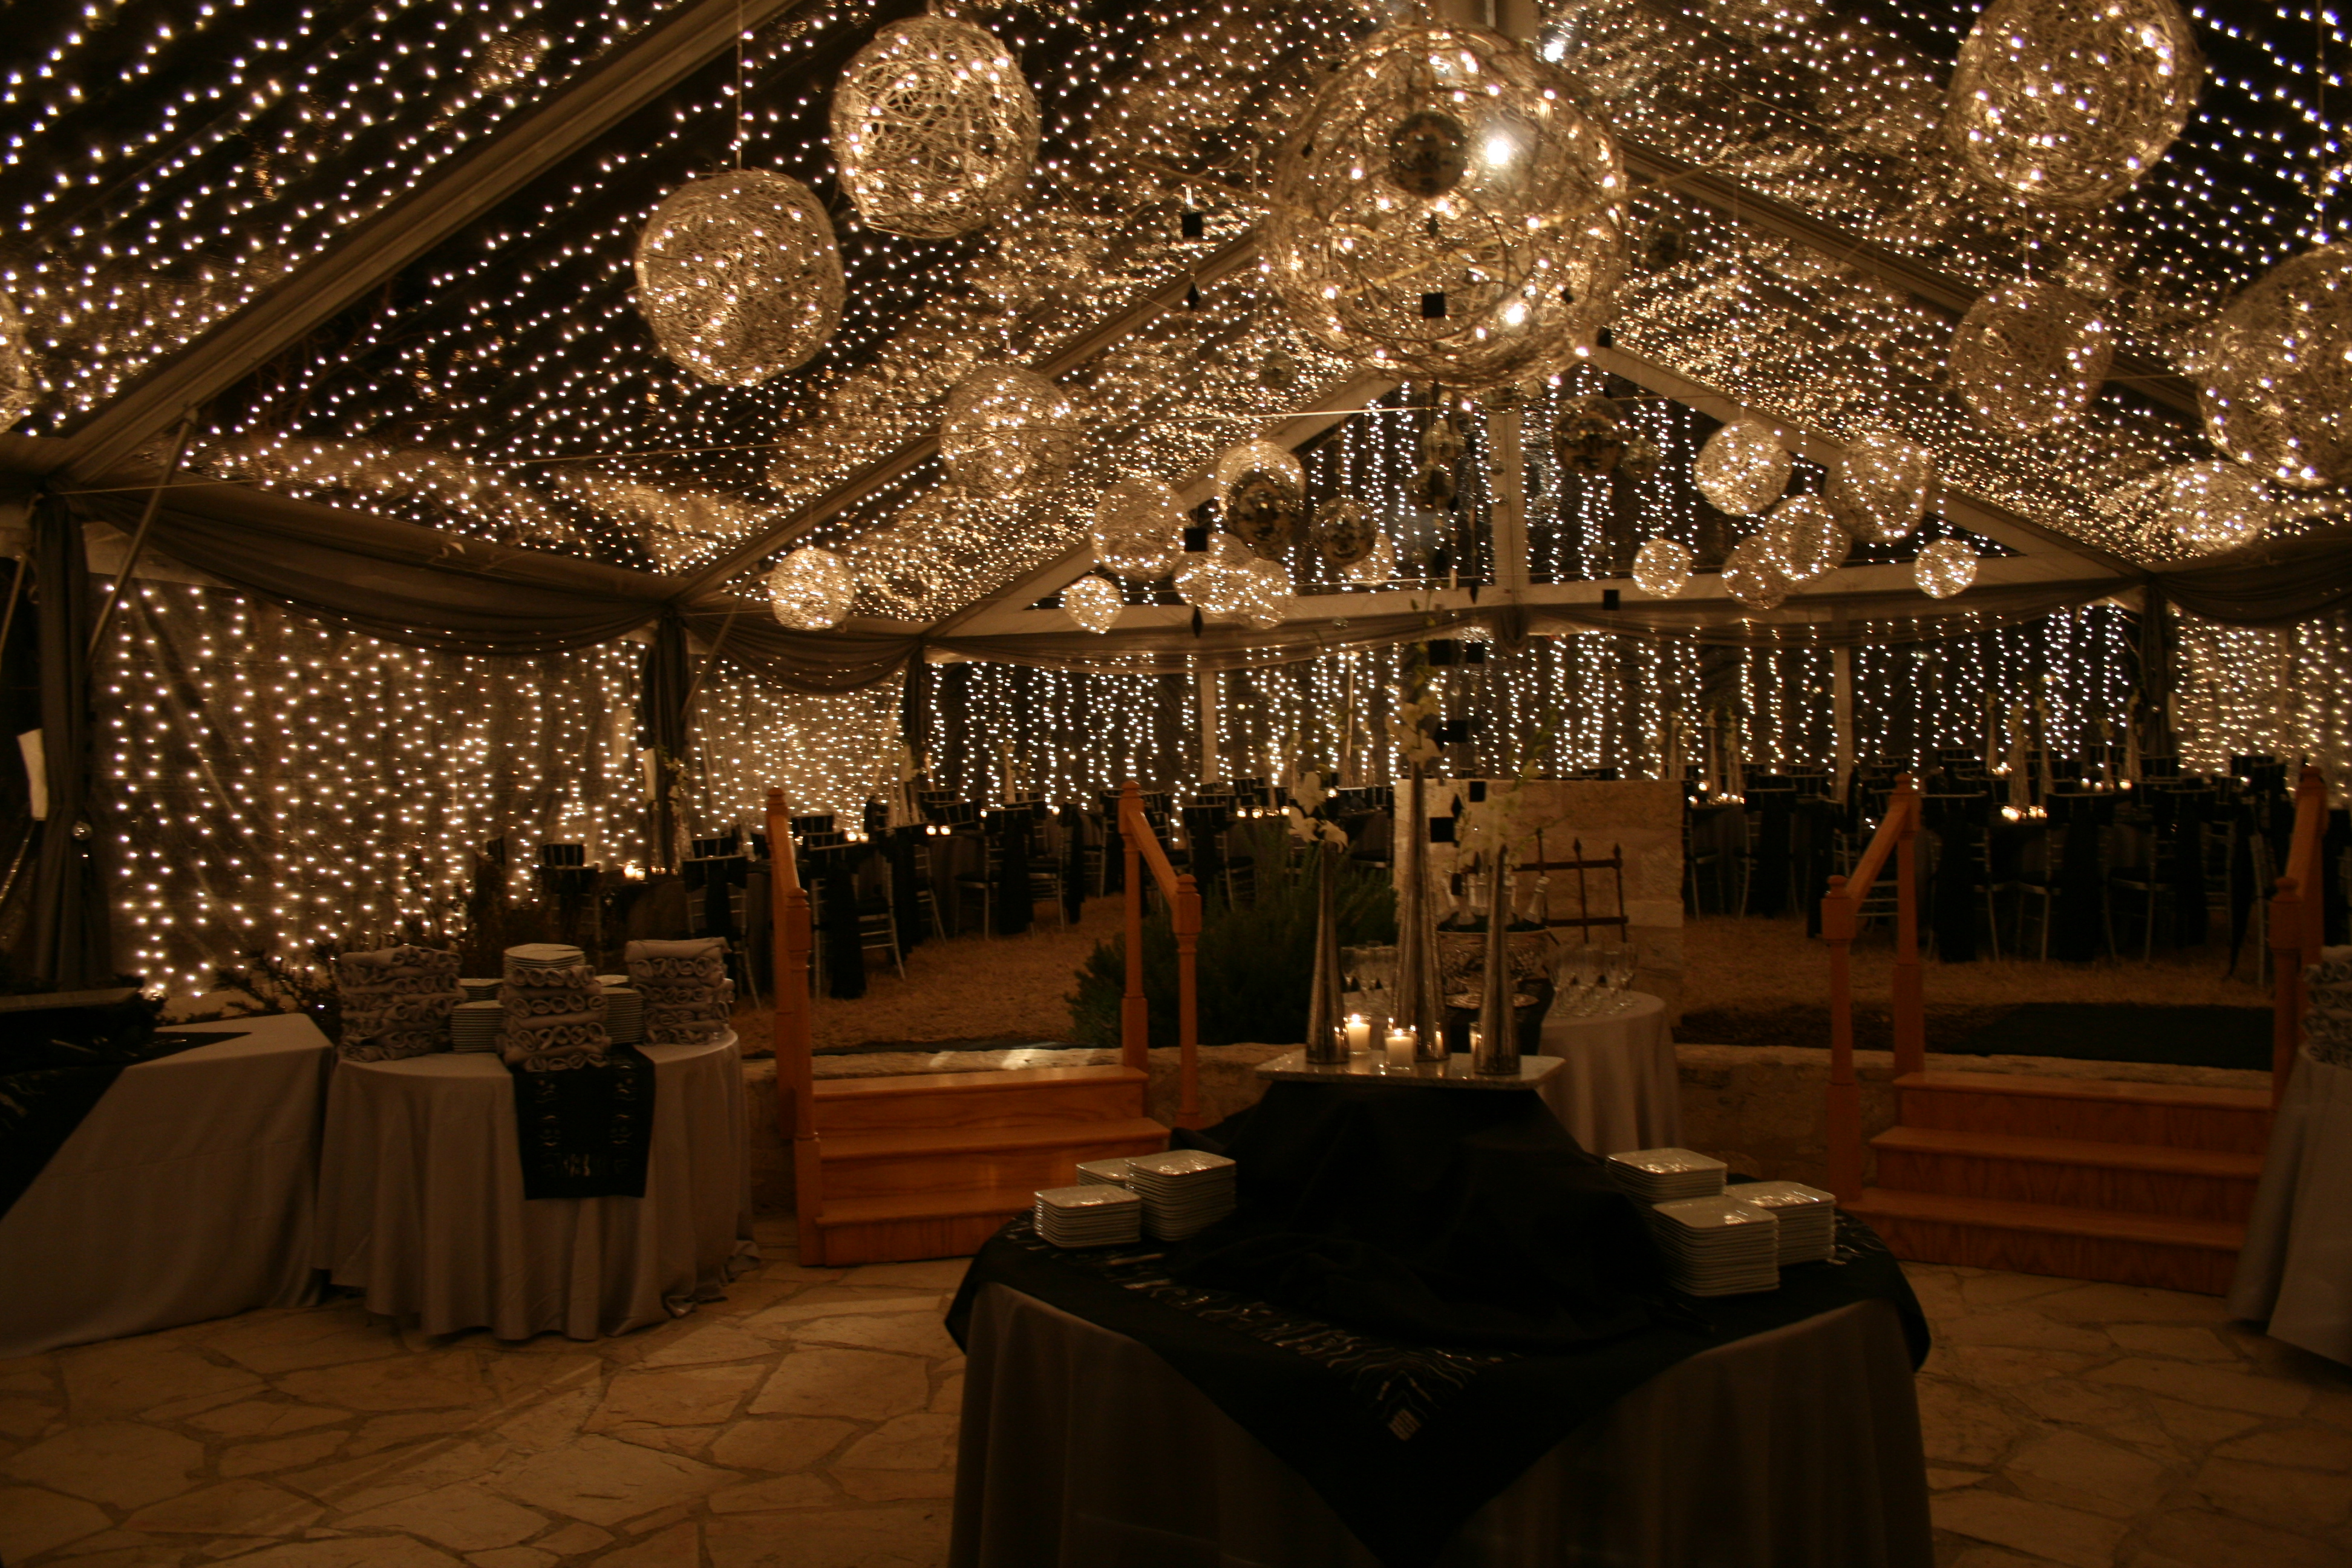 ceiling wedding drapes decor co rentals to beautiful drapery how from smsender hang events hotel rental for weddings tulum ayres